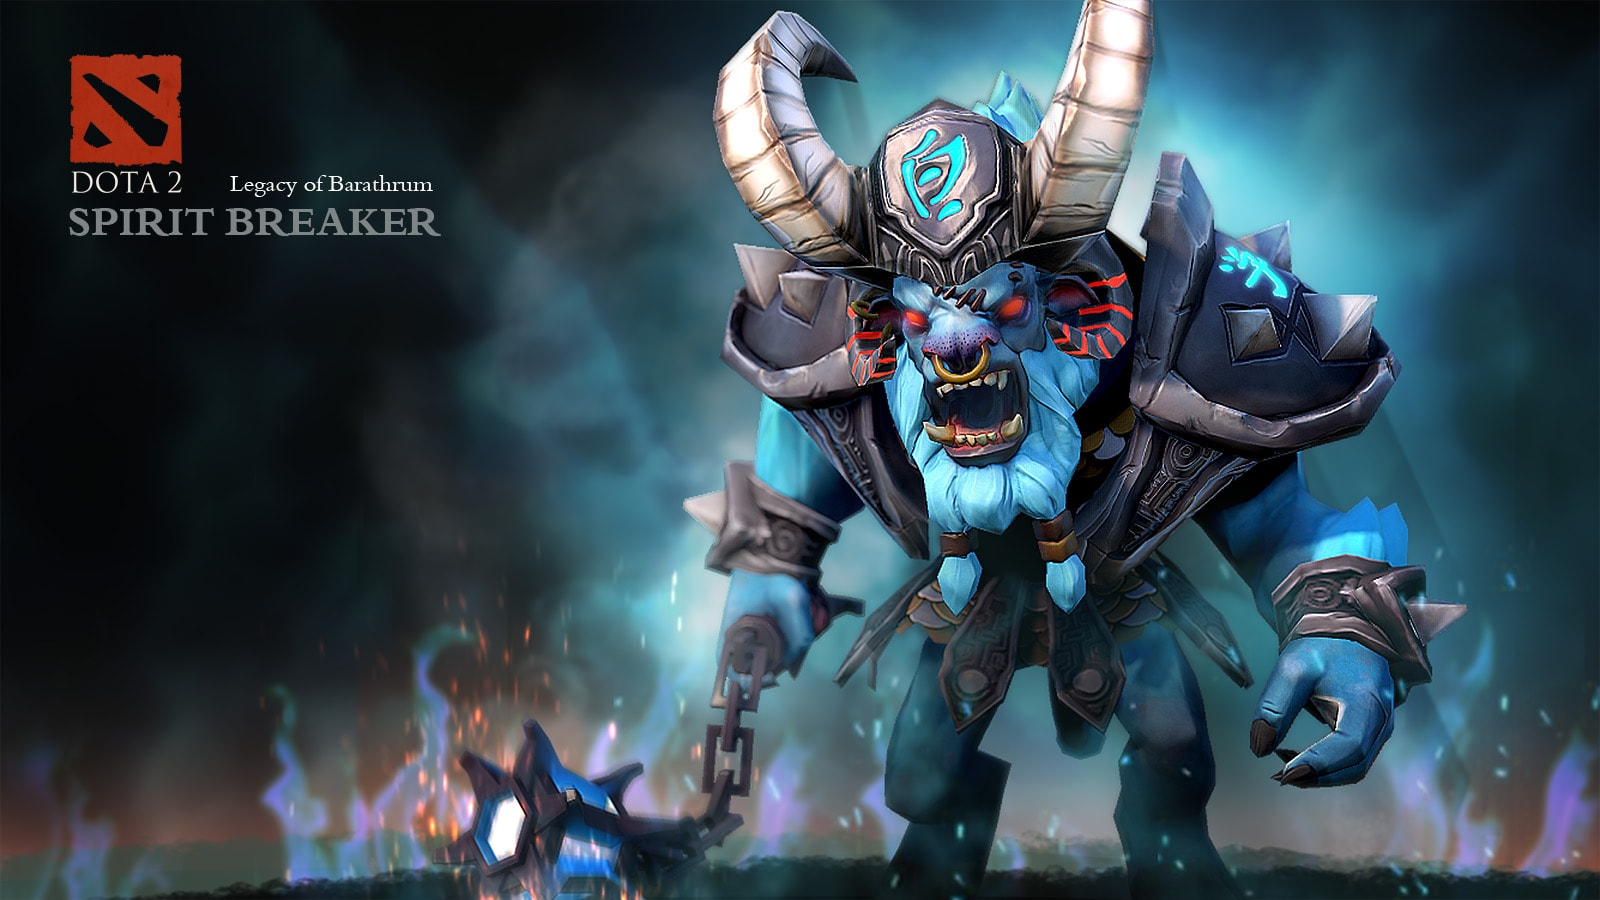 Dota2 : Spirit Breaker Background